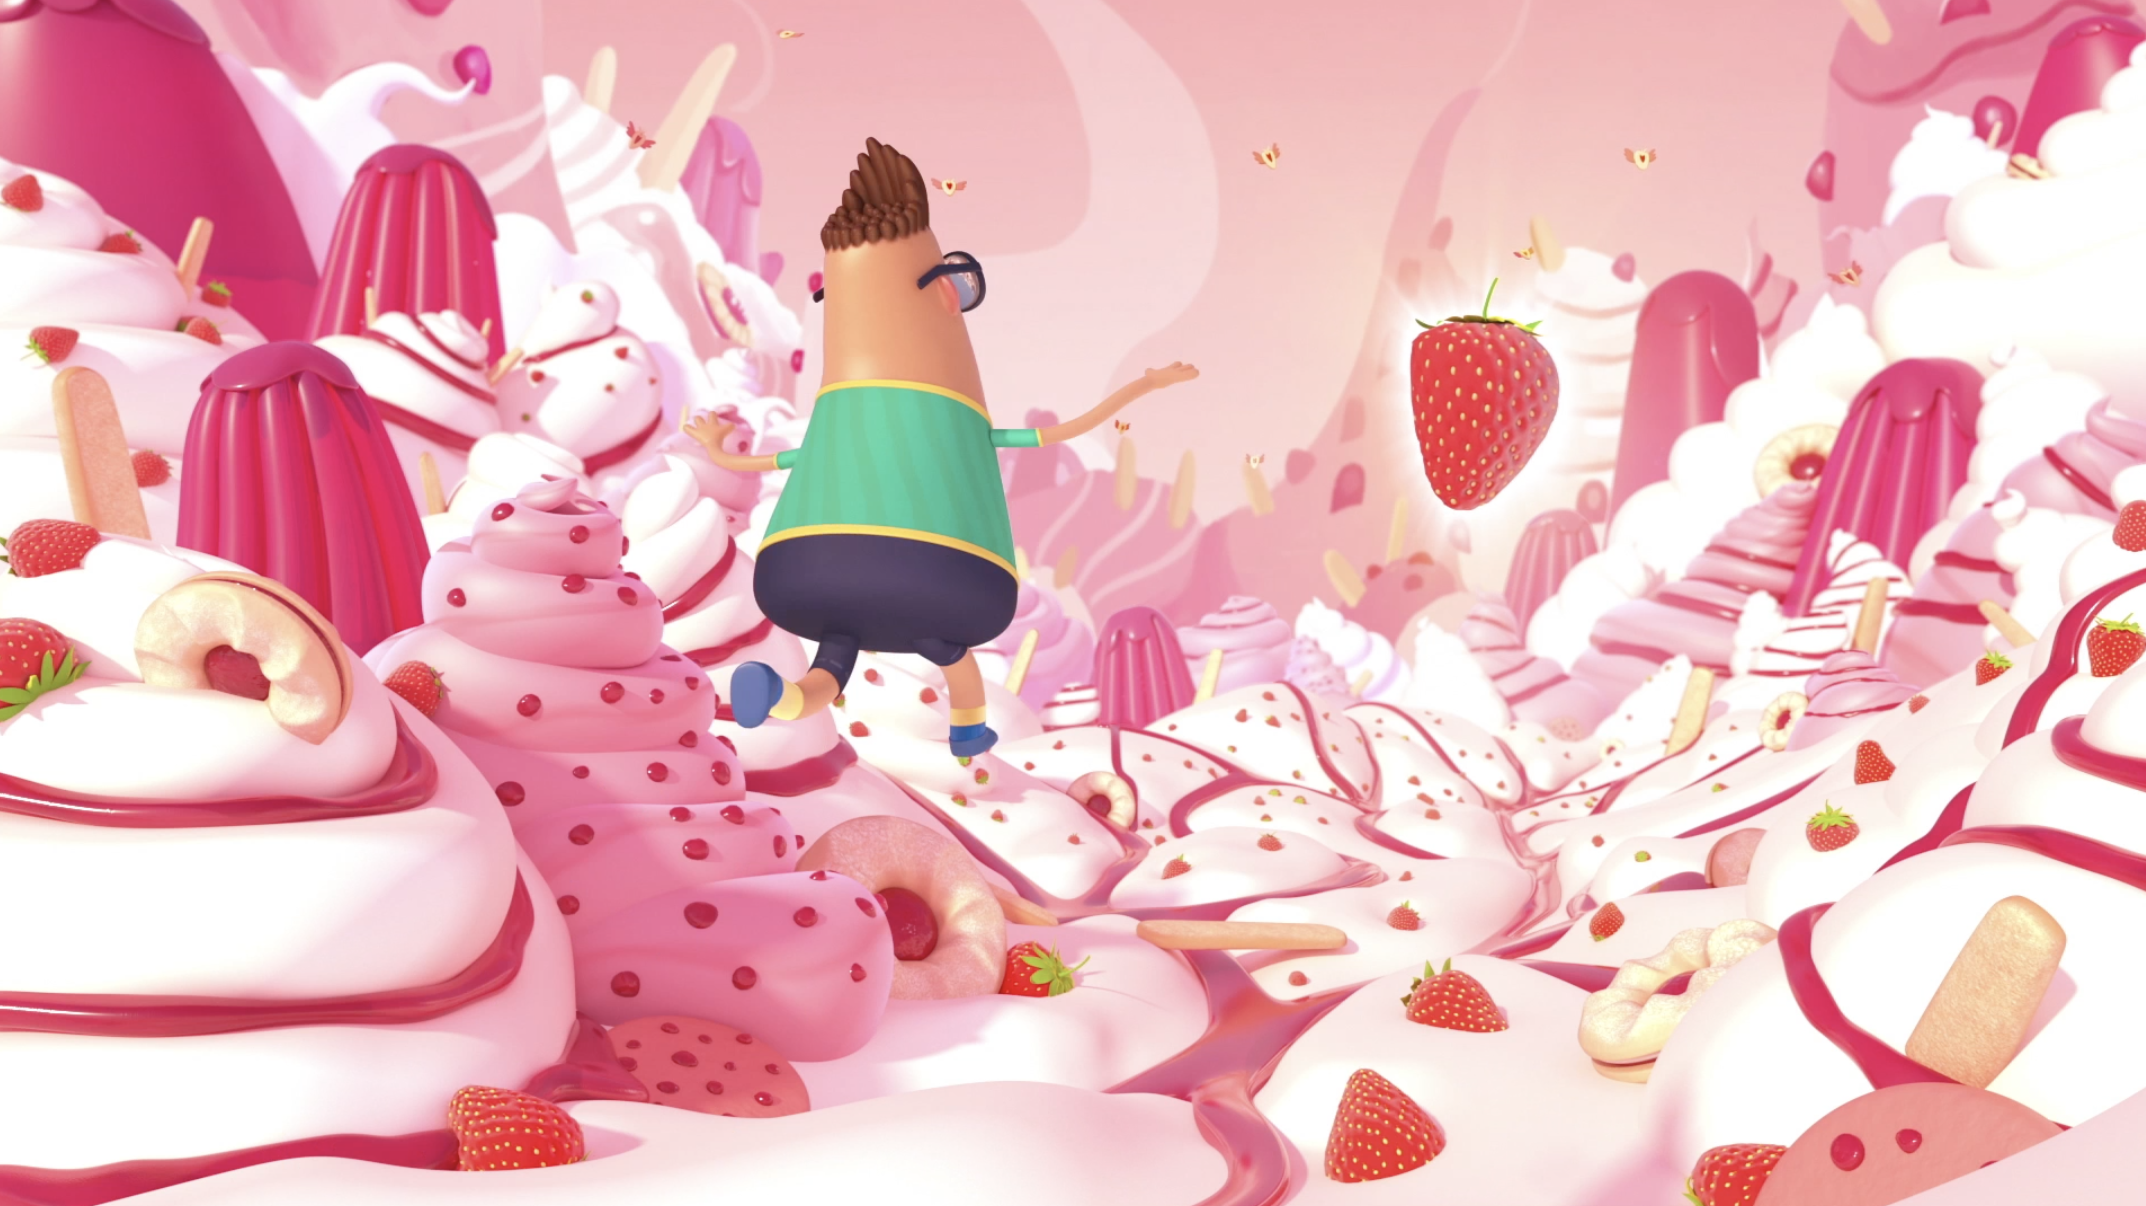 Fruit of the Loom - Branded Content • Social Activation • Animation